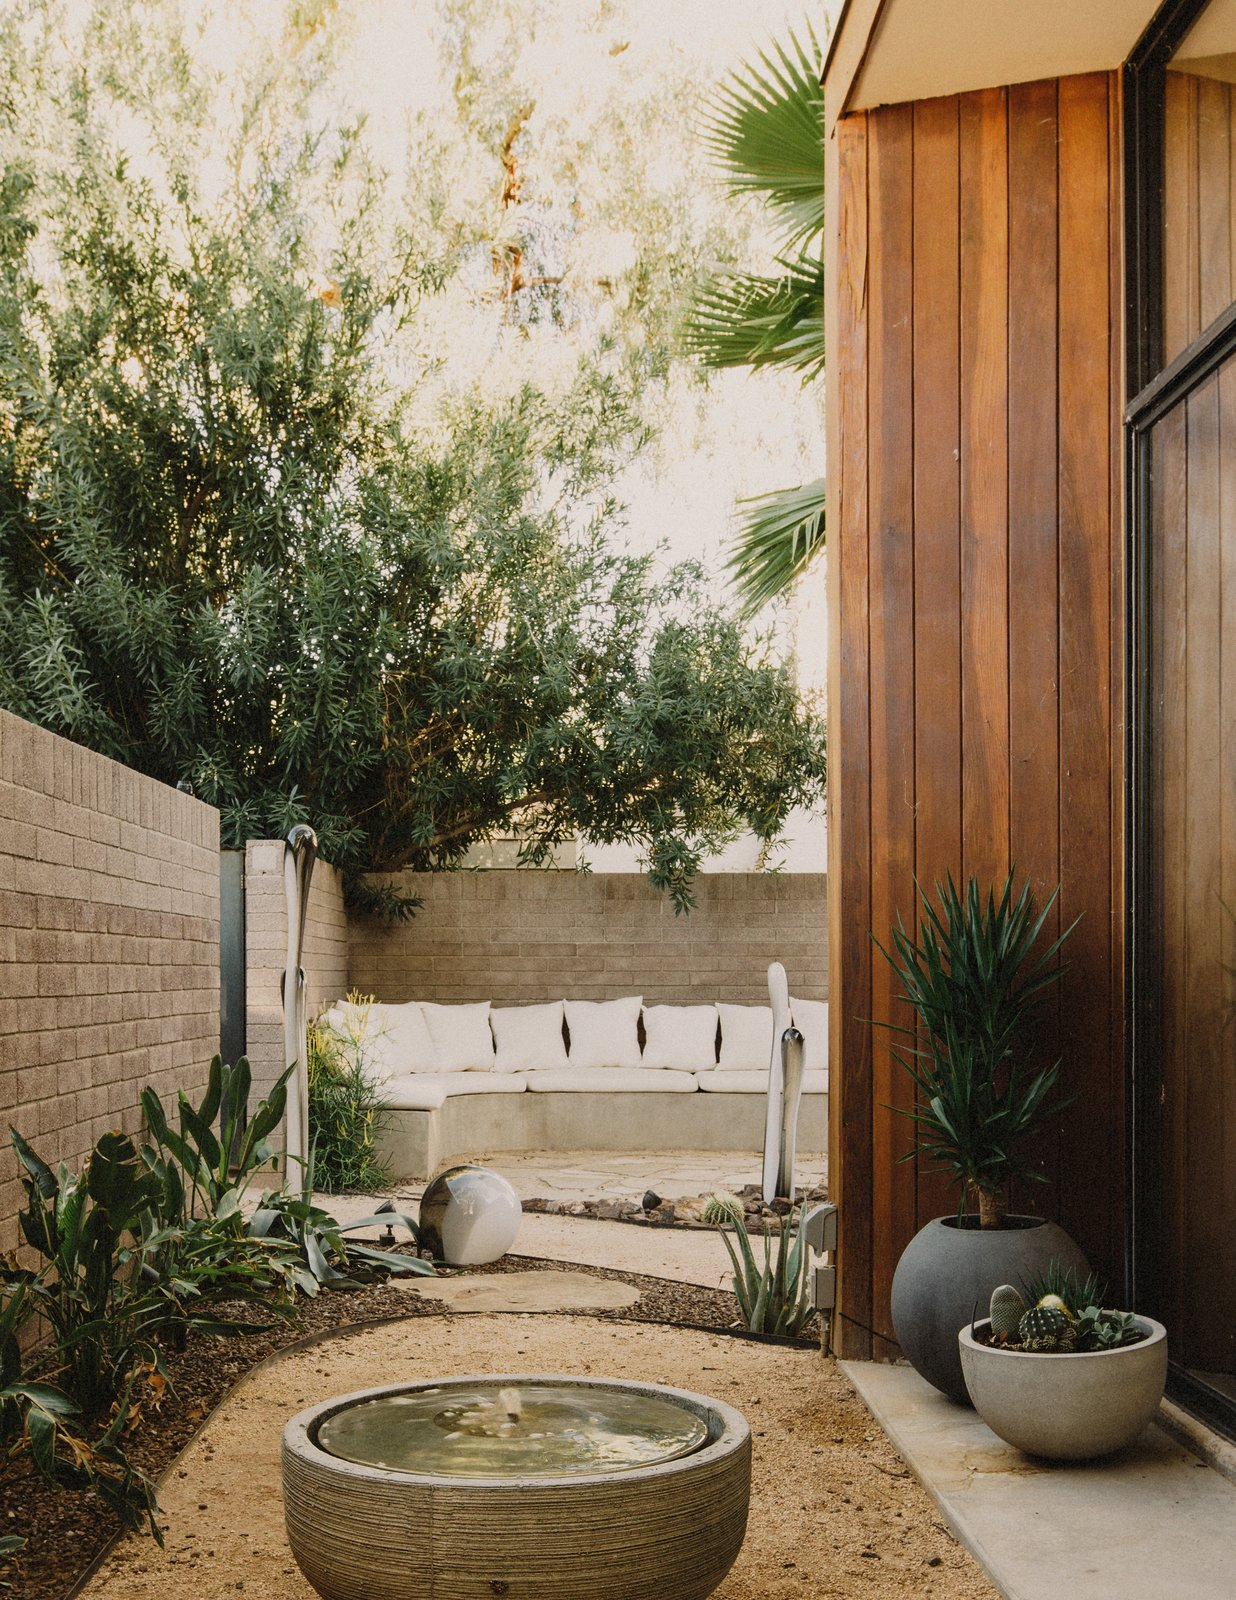 Outdoor, Front Yard, Desert, Raised Planters, Stone Patio, Porch, Deck, Decomposed Granite Patio, Porch, Deck, and Shrubs View from the office courtyard to the entry courtyard that features a custom concrete bench  Curves House by The Ranch Mine